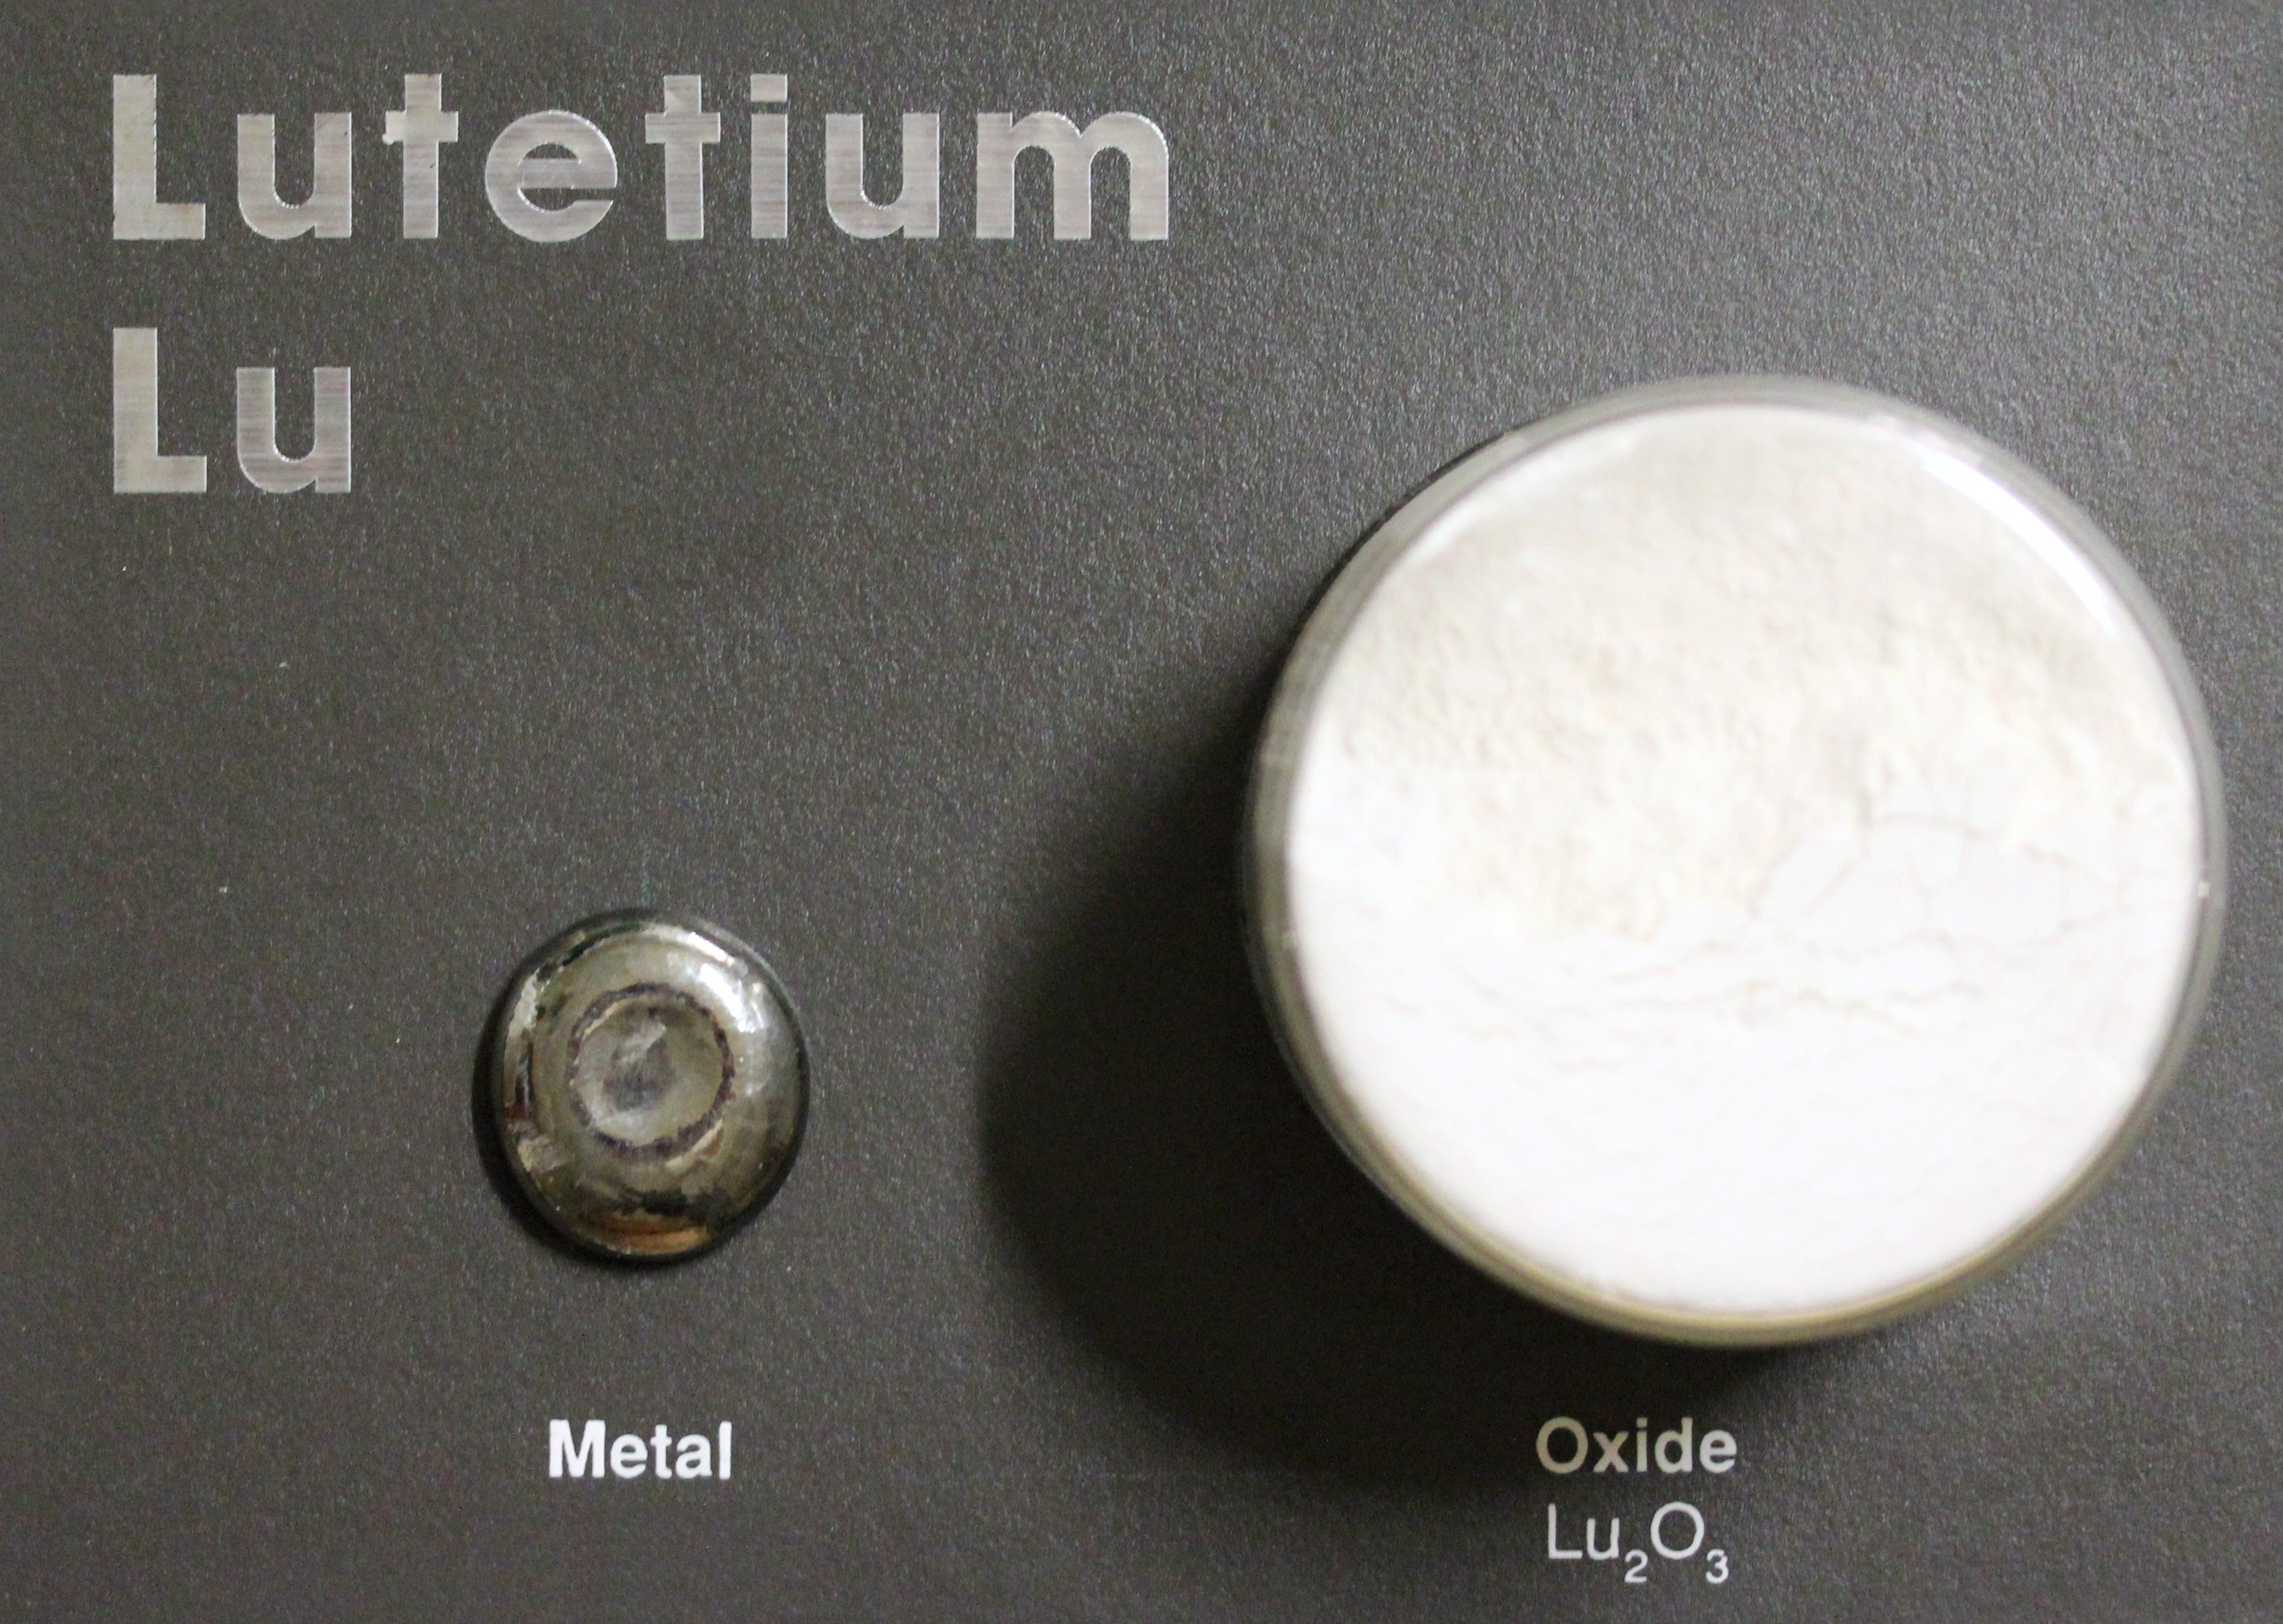 Lutetium metal and oxide